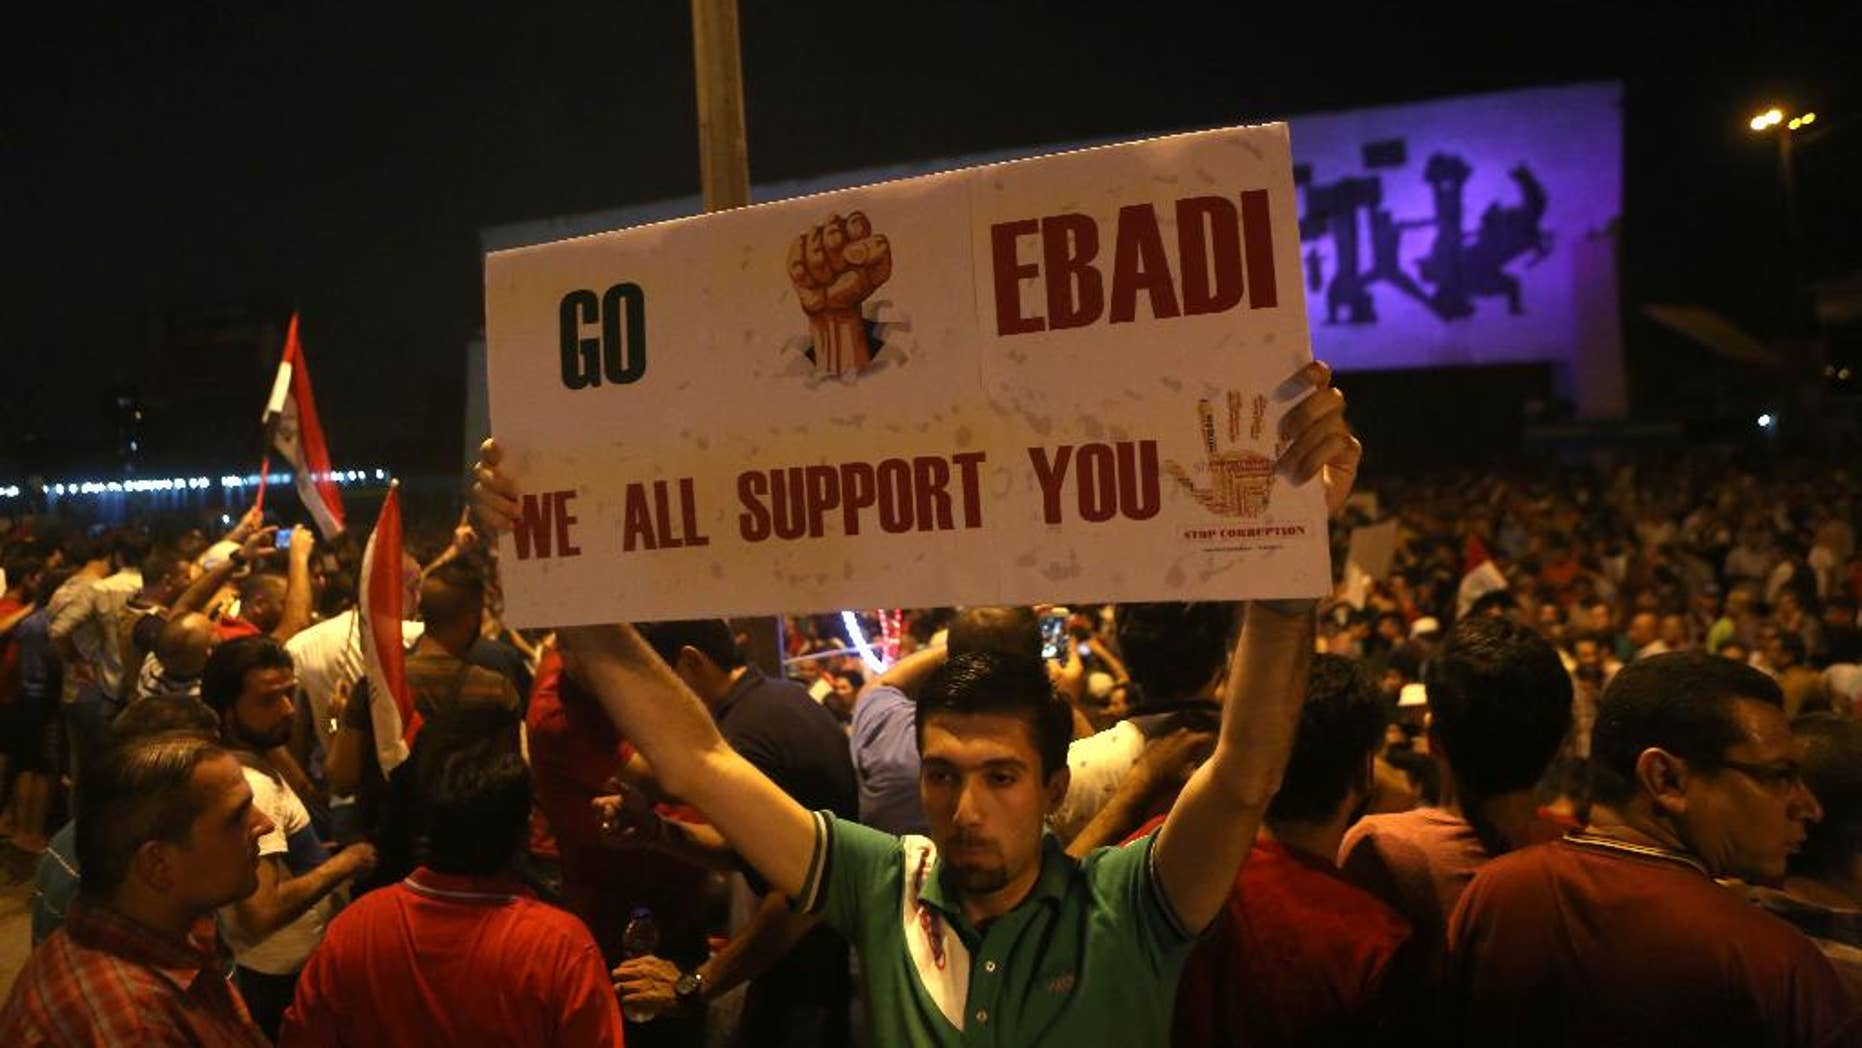 Demonstrators chant in support of Iraqi Prime Minister Haider al-Abadi during a demonstration at Tahrir Square in Baghdad, Iraq, Sunday, Aug. 9, 2015. Iraq's prime minister unveiled a bold plan Sunday to abolish three vice presidential posts and the offices of three deputy premiers, hoping to cut spending amid mass protests against his government as the Islamic State group still holds a third of his nation. (AP Photo/Khalid Mohammed)